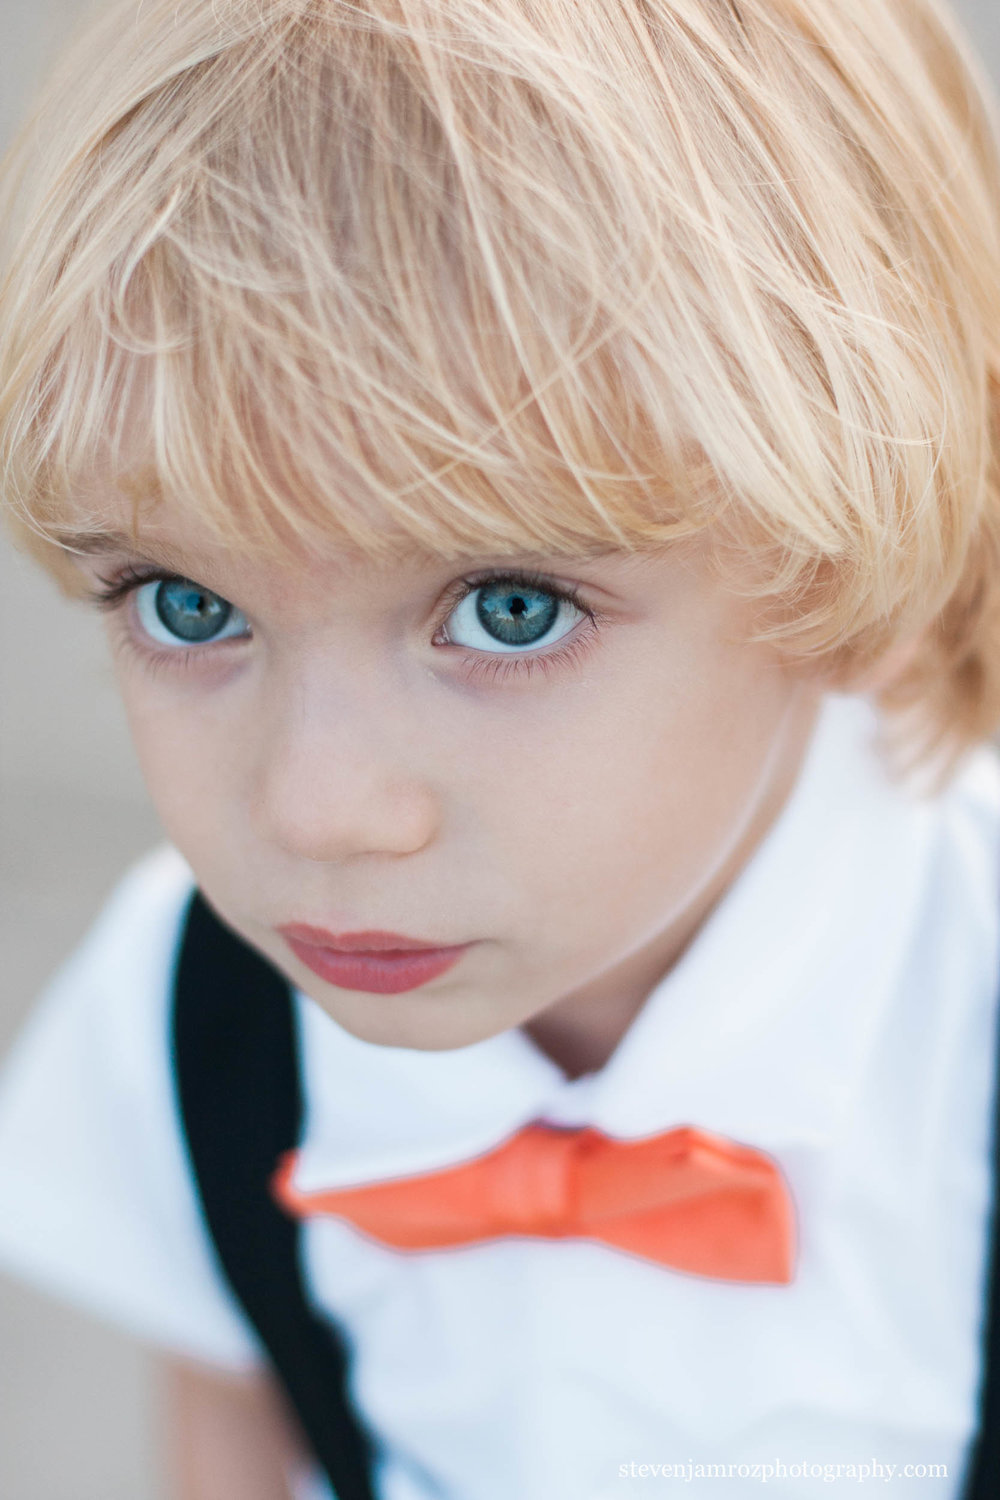 ring-bearer-wedding-photo-raleigh-cute-0884.jpg